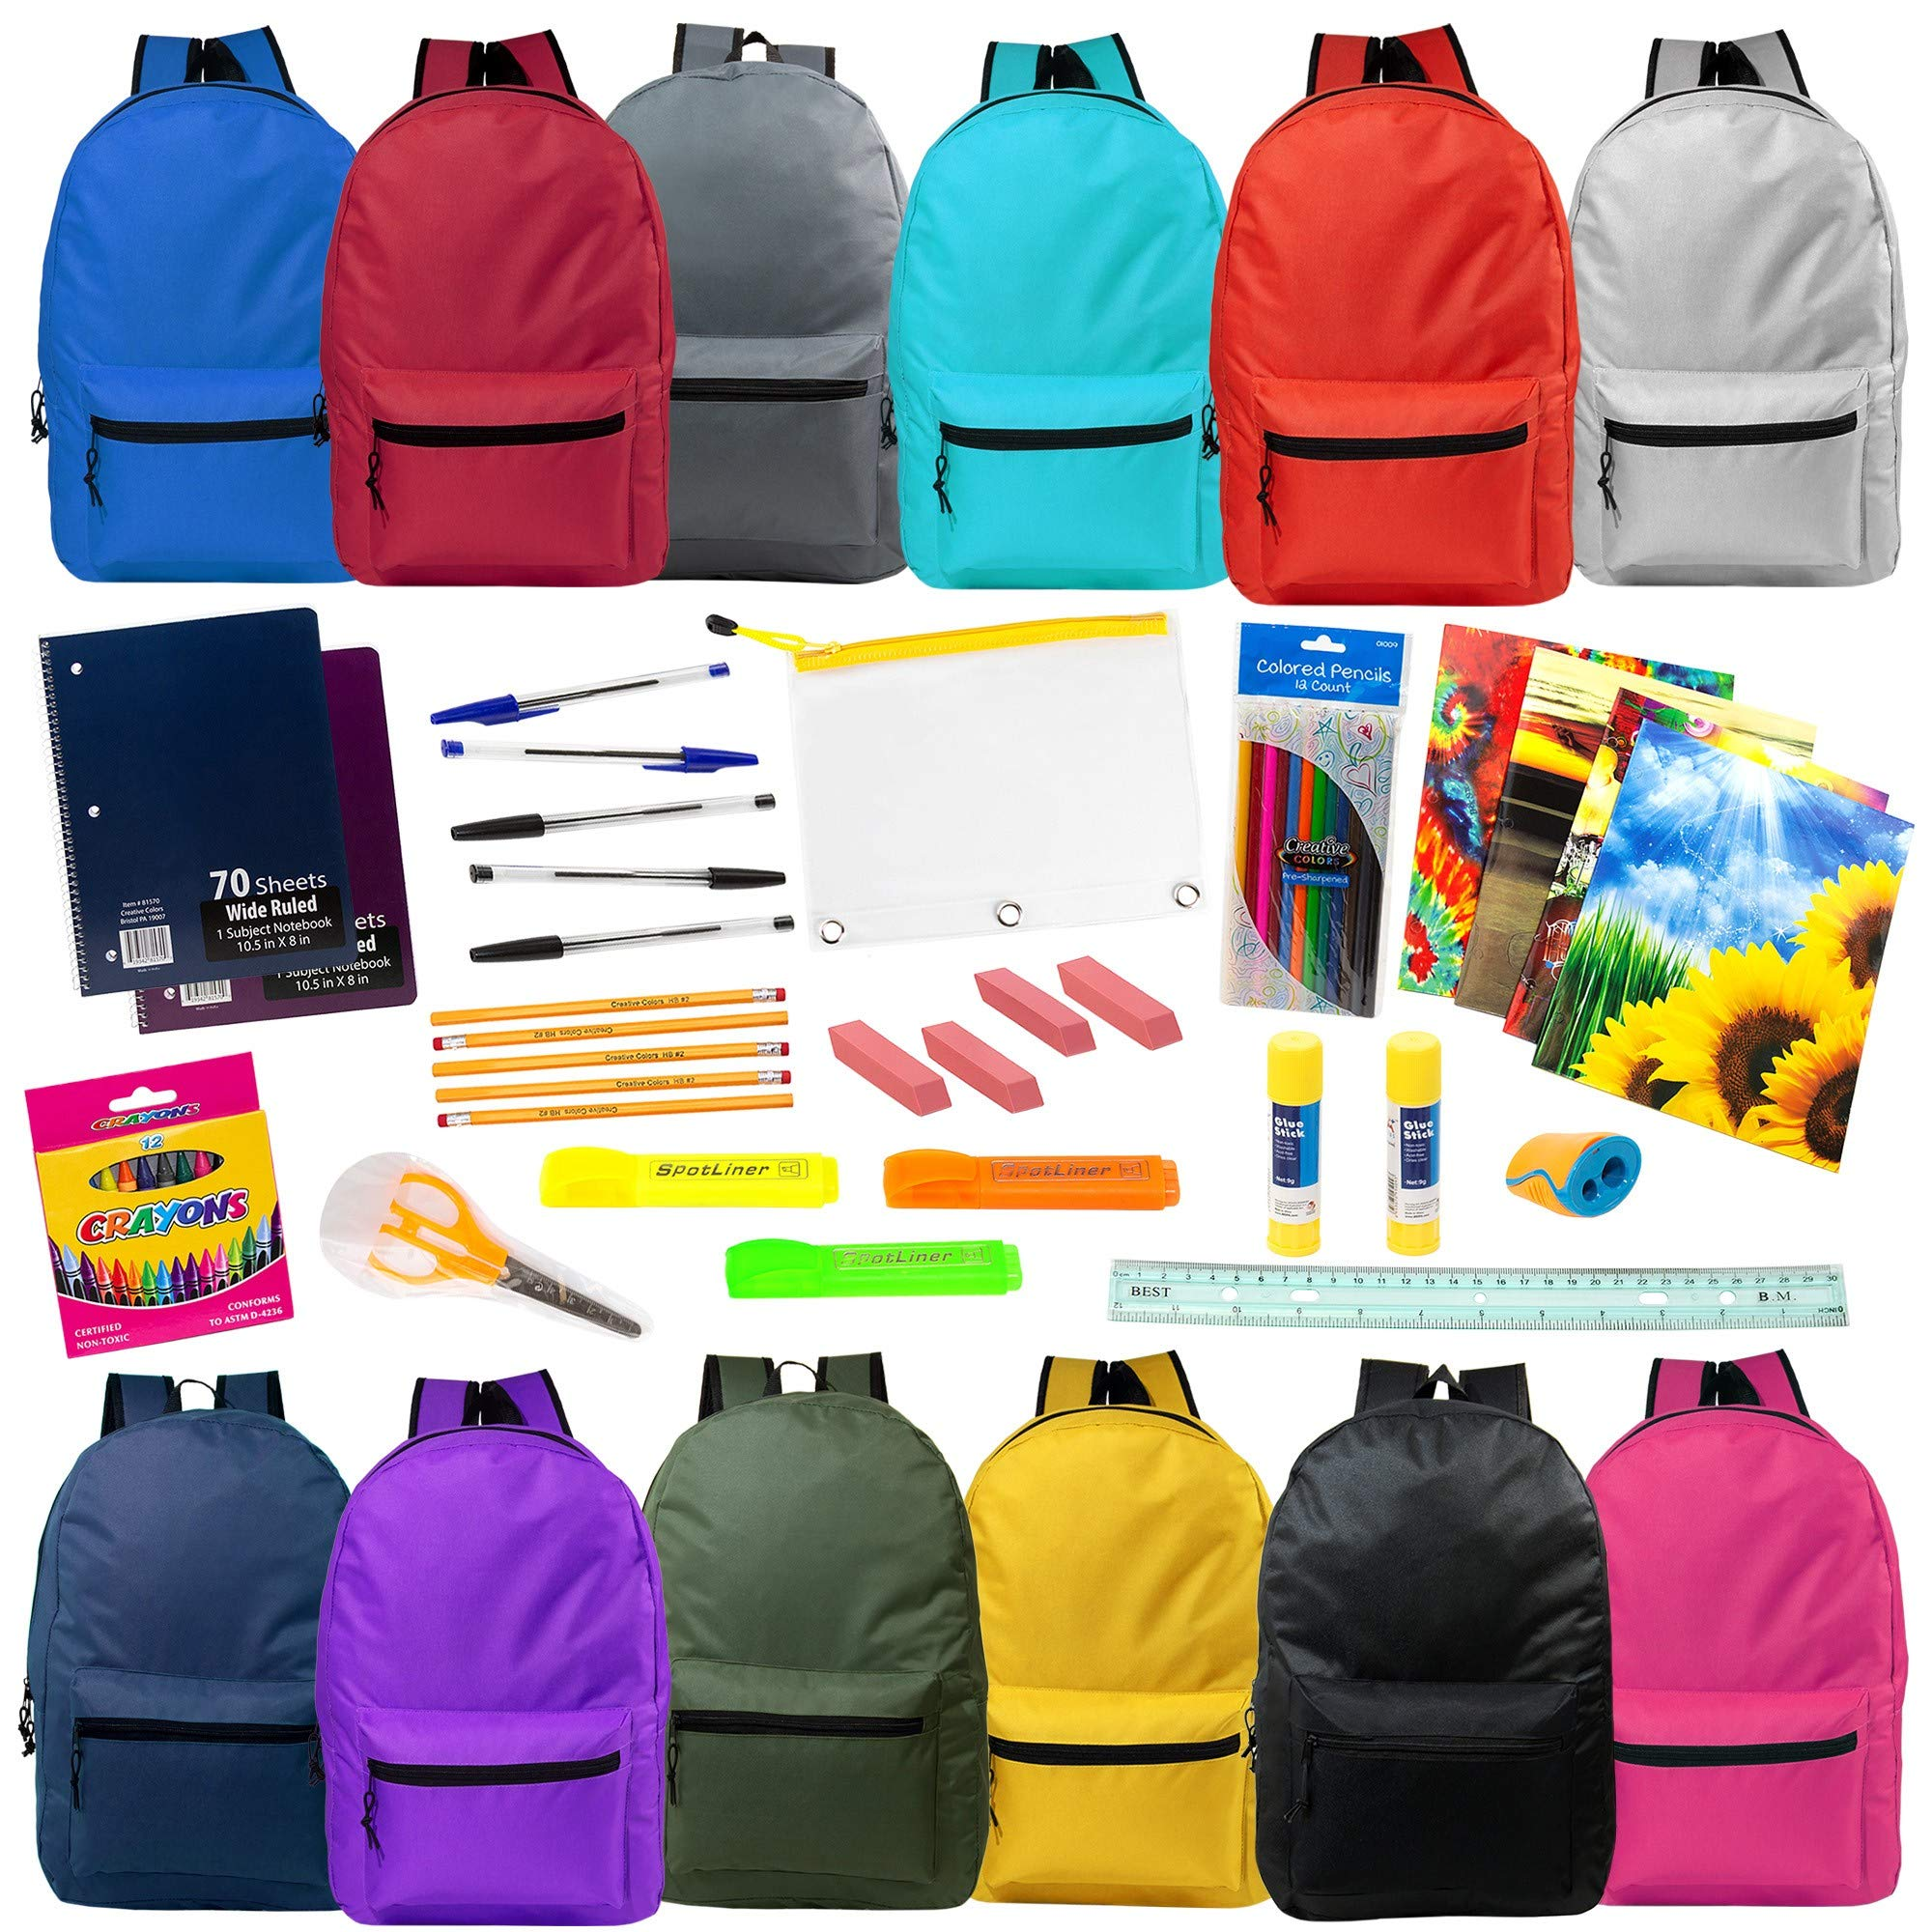 19'' Wholesale Backpacks in 12 Assorted Colors with 53 Piece School Supply Kit - Bulk Case of 12